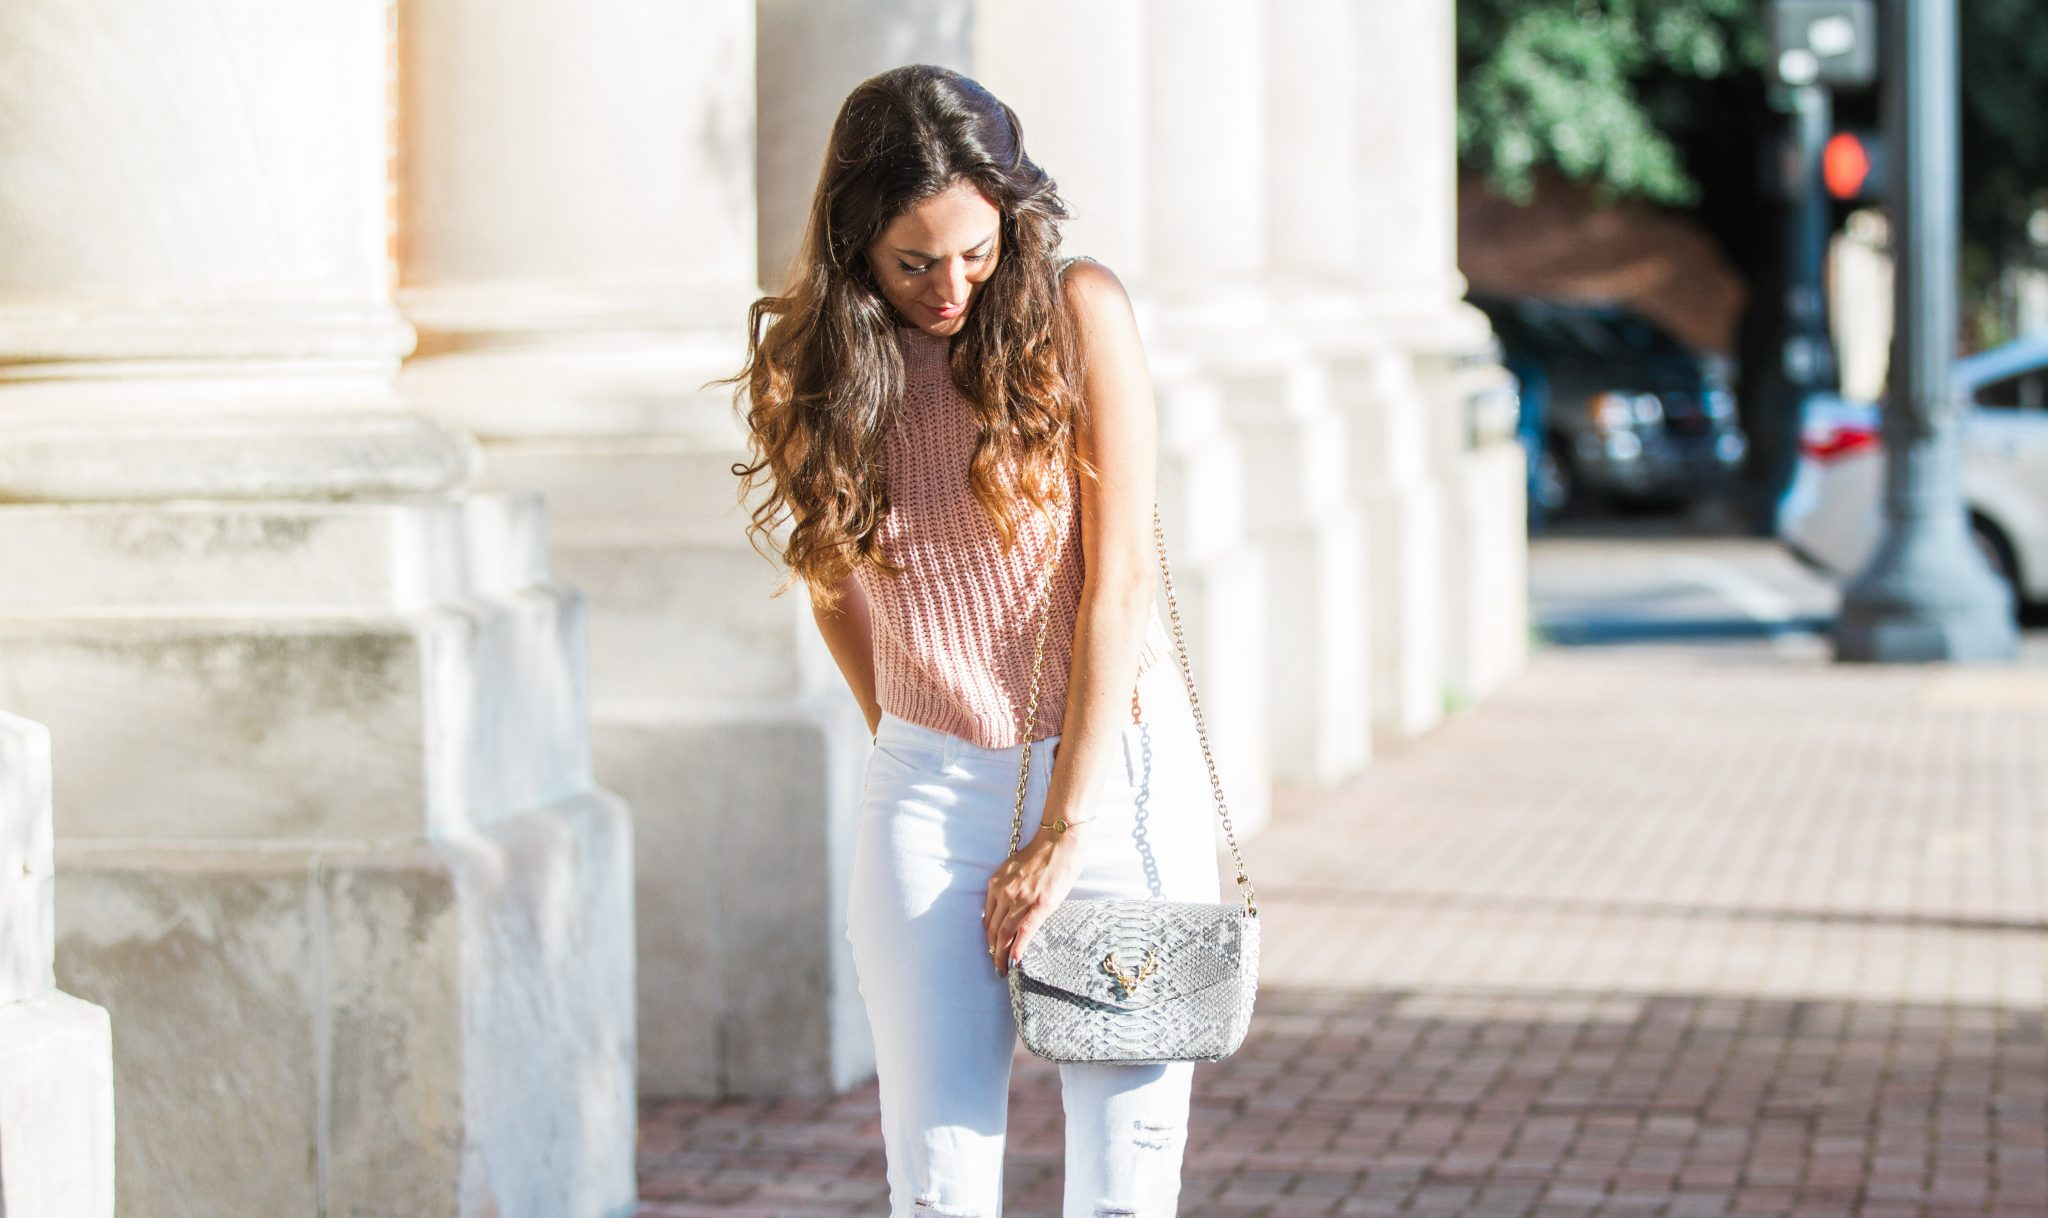 pink and white, casual elegance, stylish summer outfits, taxidermy bags, how to style white ripped jeans, lush to blush, atlanta style blogger, trendy style, glam weekend looks, python crossbody